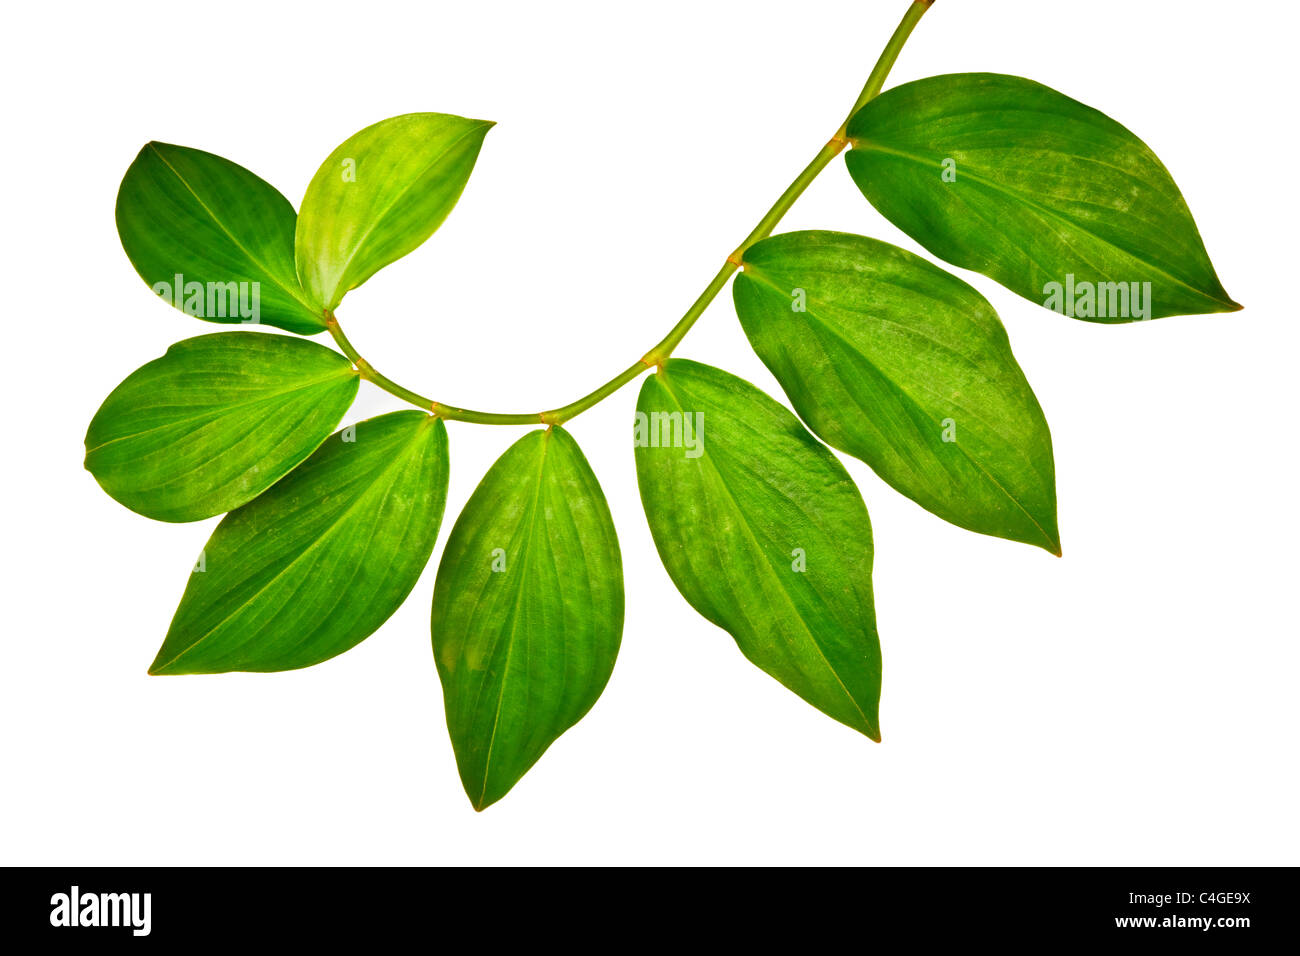 Branch of green leaves isolated on white background - Stock Image